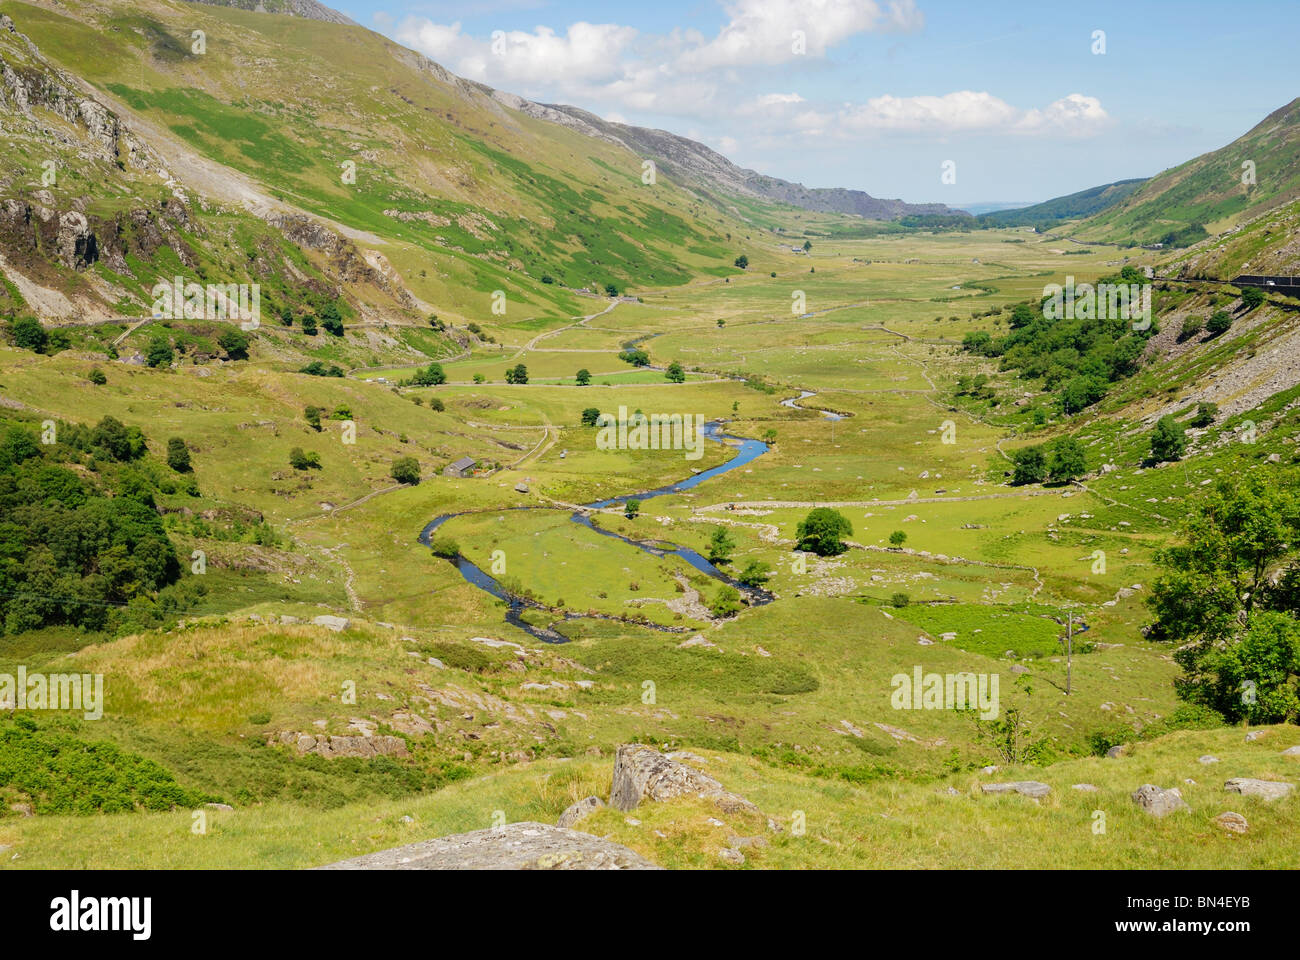 glaciated valley Valley glacier definition is - a glacier usually originating in a cirque at a valley  head or in a plateau ice cap and flowing downward between the walls of a valley.